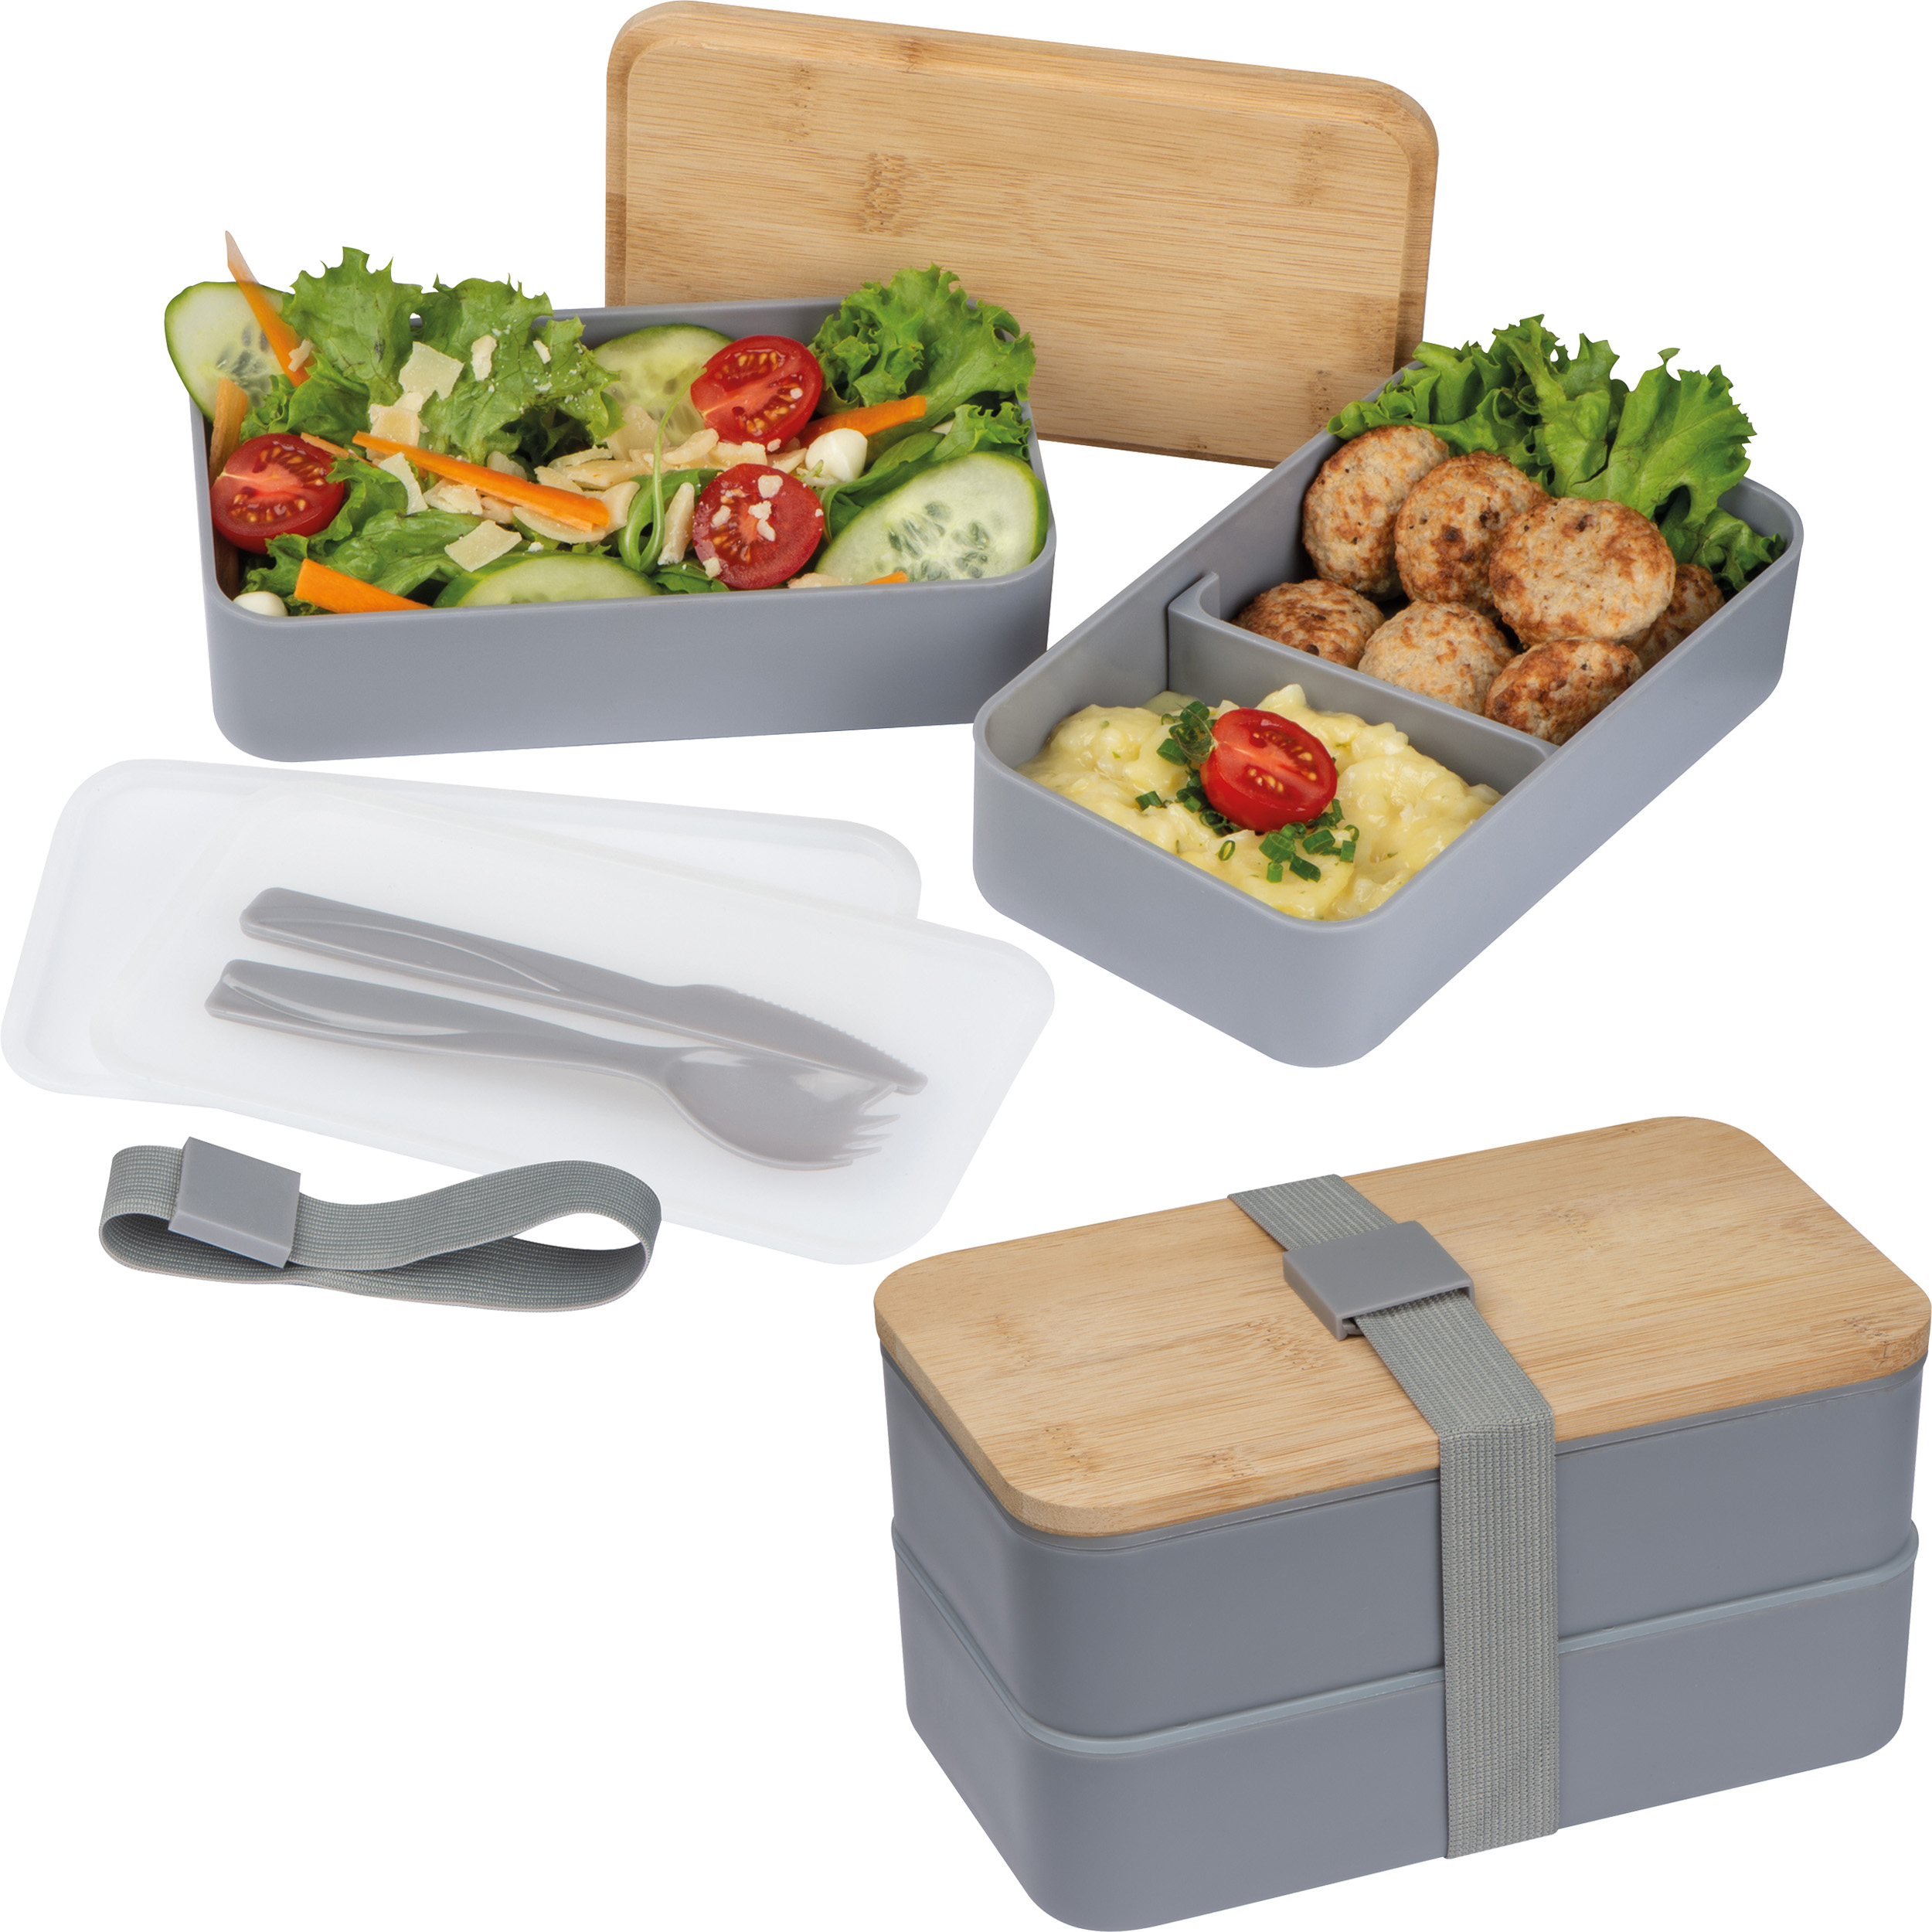 Lunchbox with two compartments